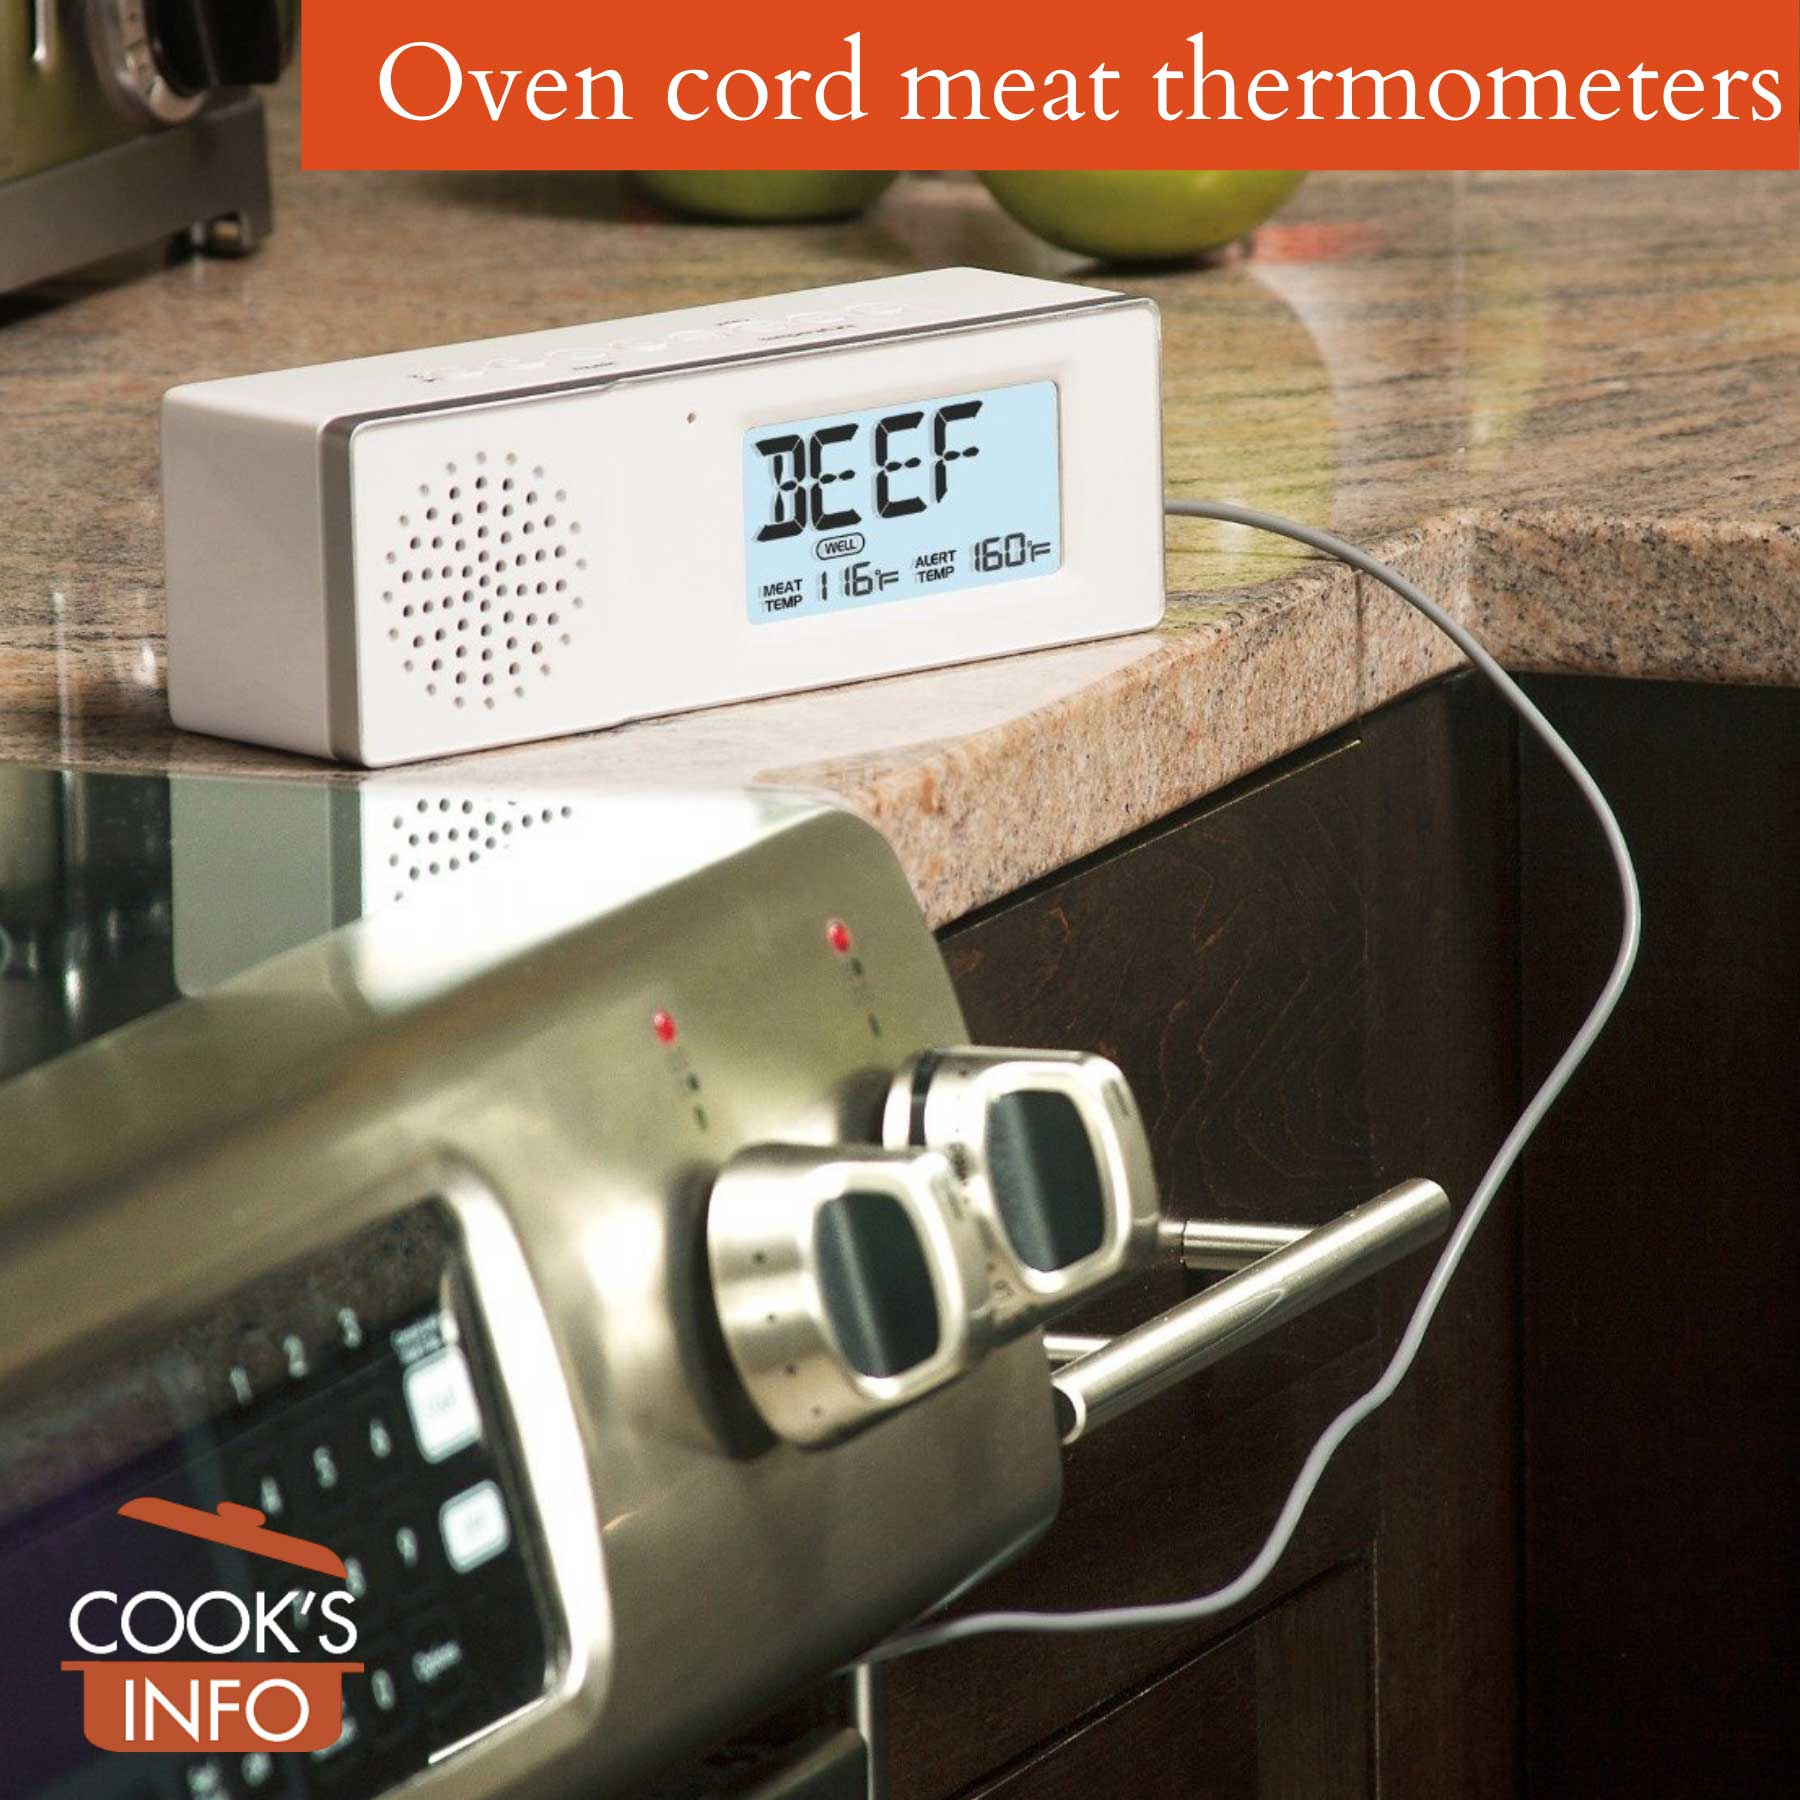 Oven cord meat thermometer